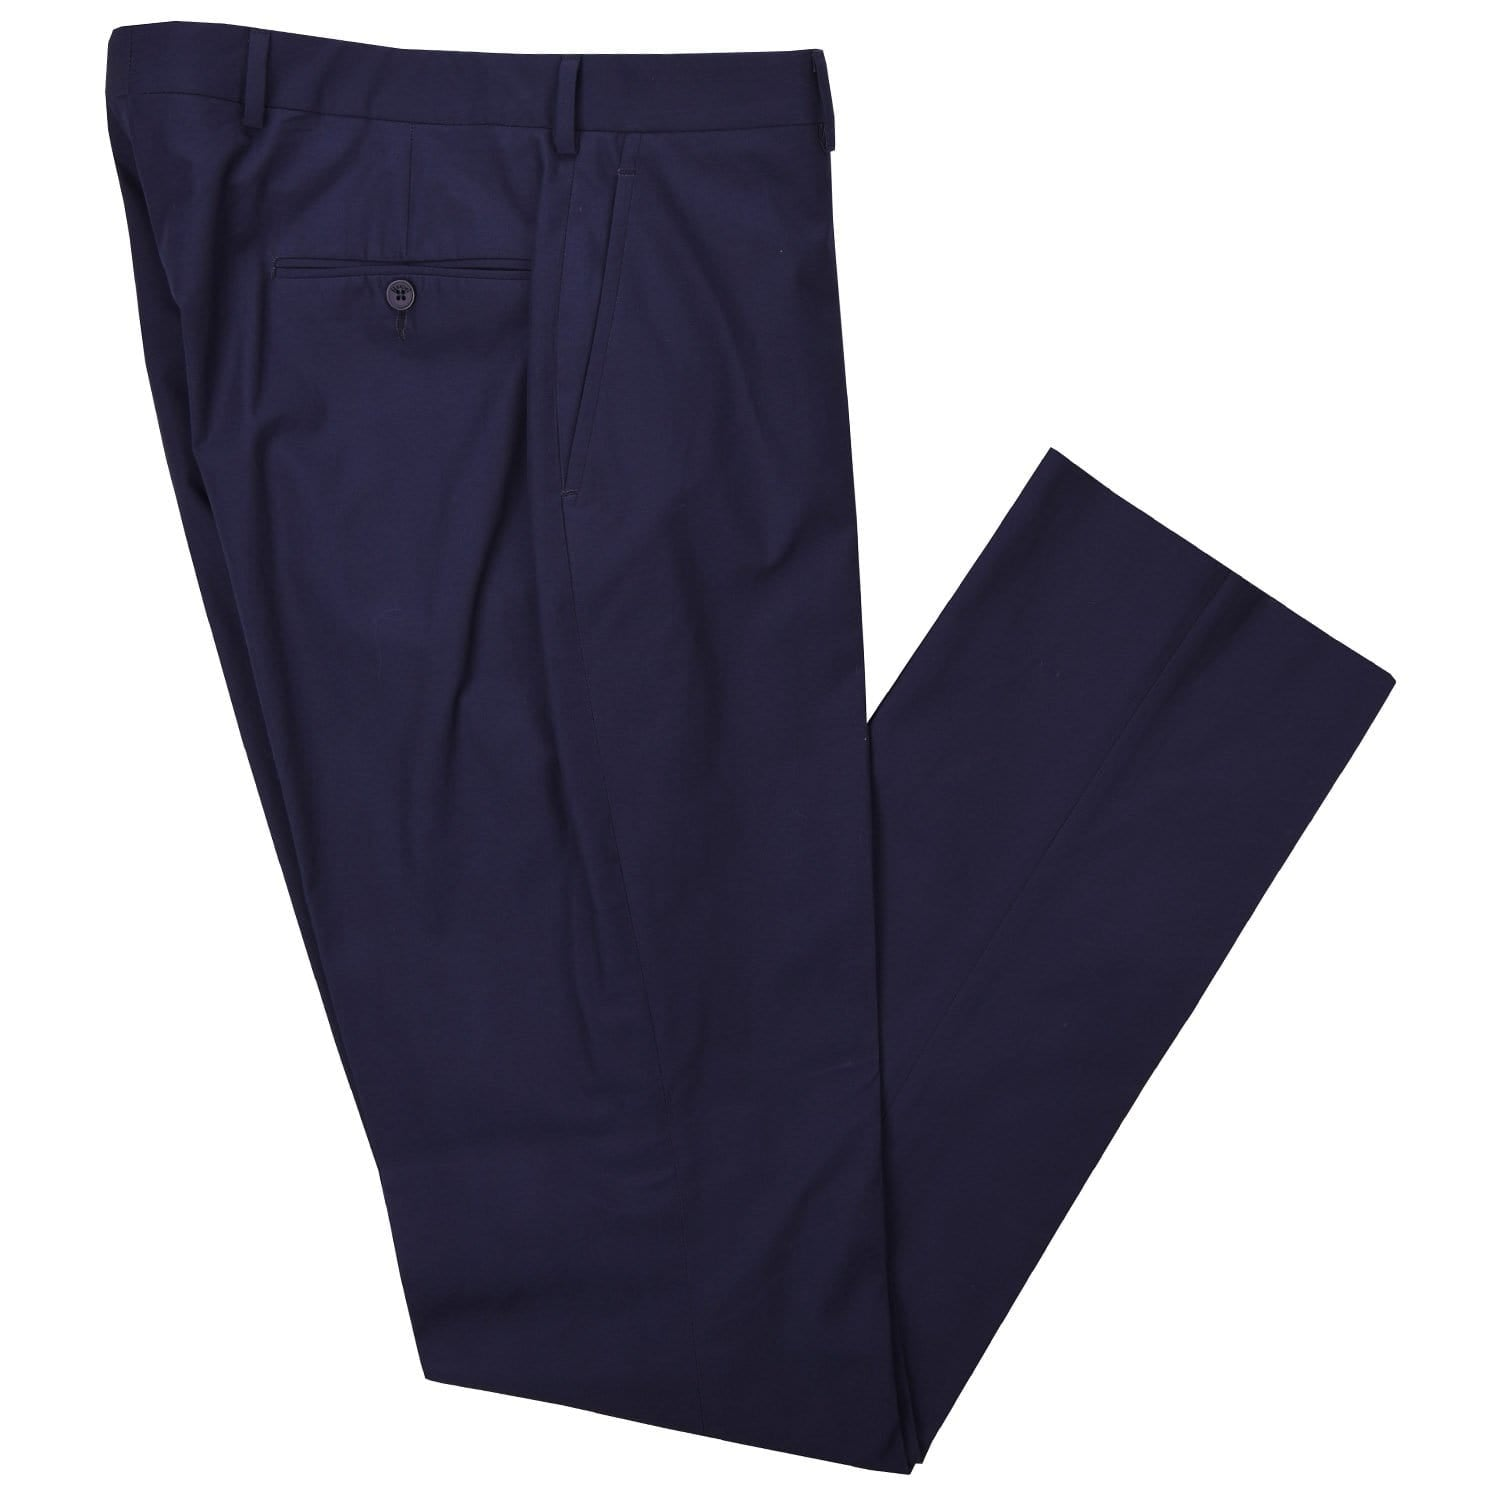 Nautical Navy Poplin Pant - Haspel Clothing